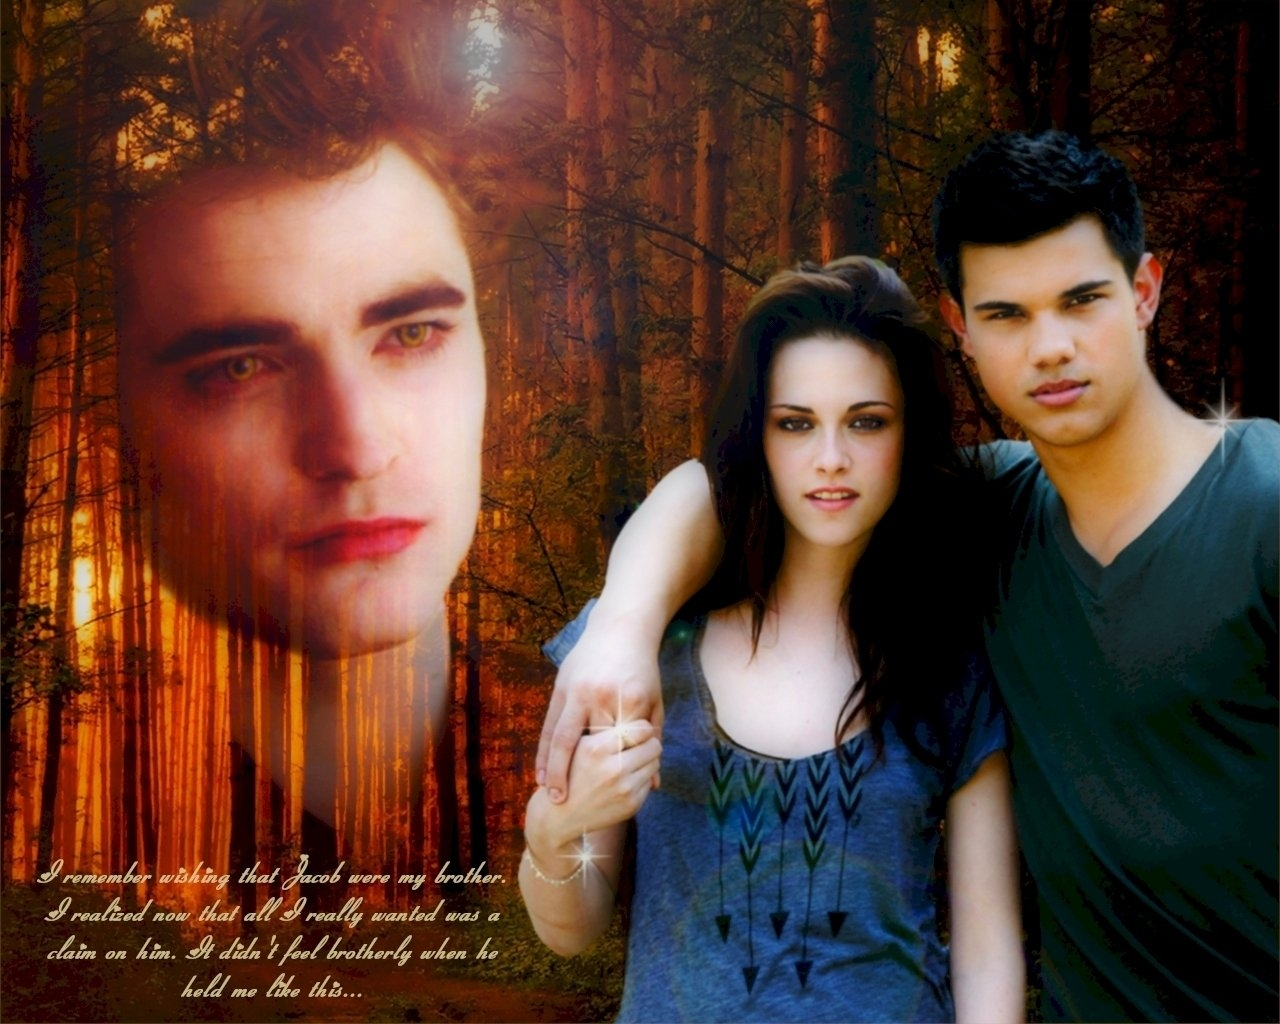 Edward-Bella-Jacob-twilight-series-8380315-1280-1024 - сумреки обои